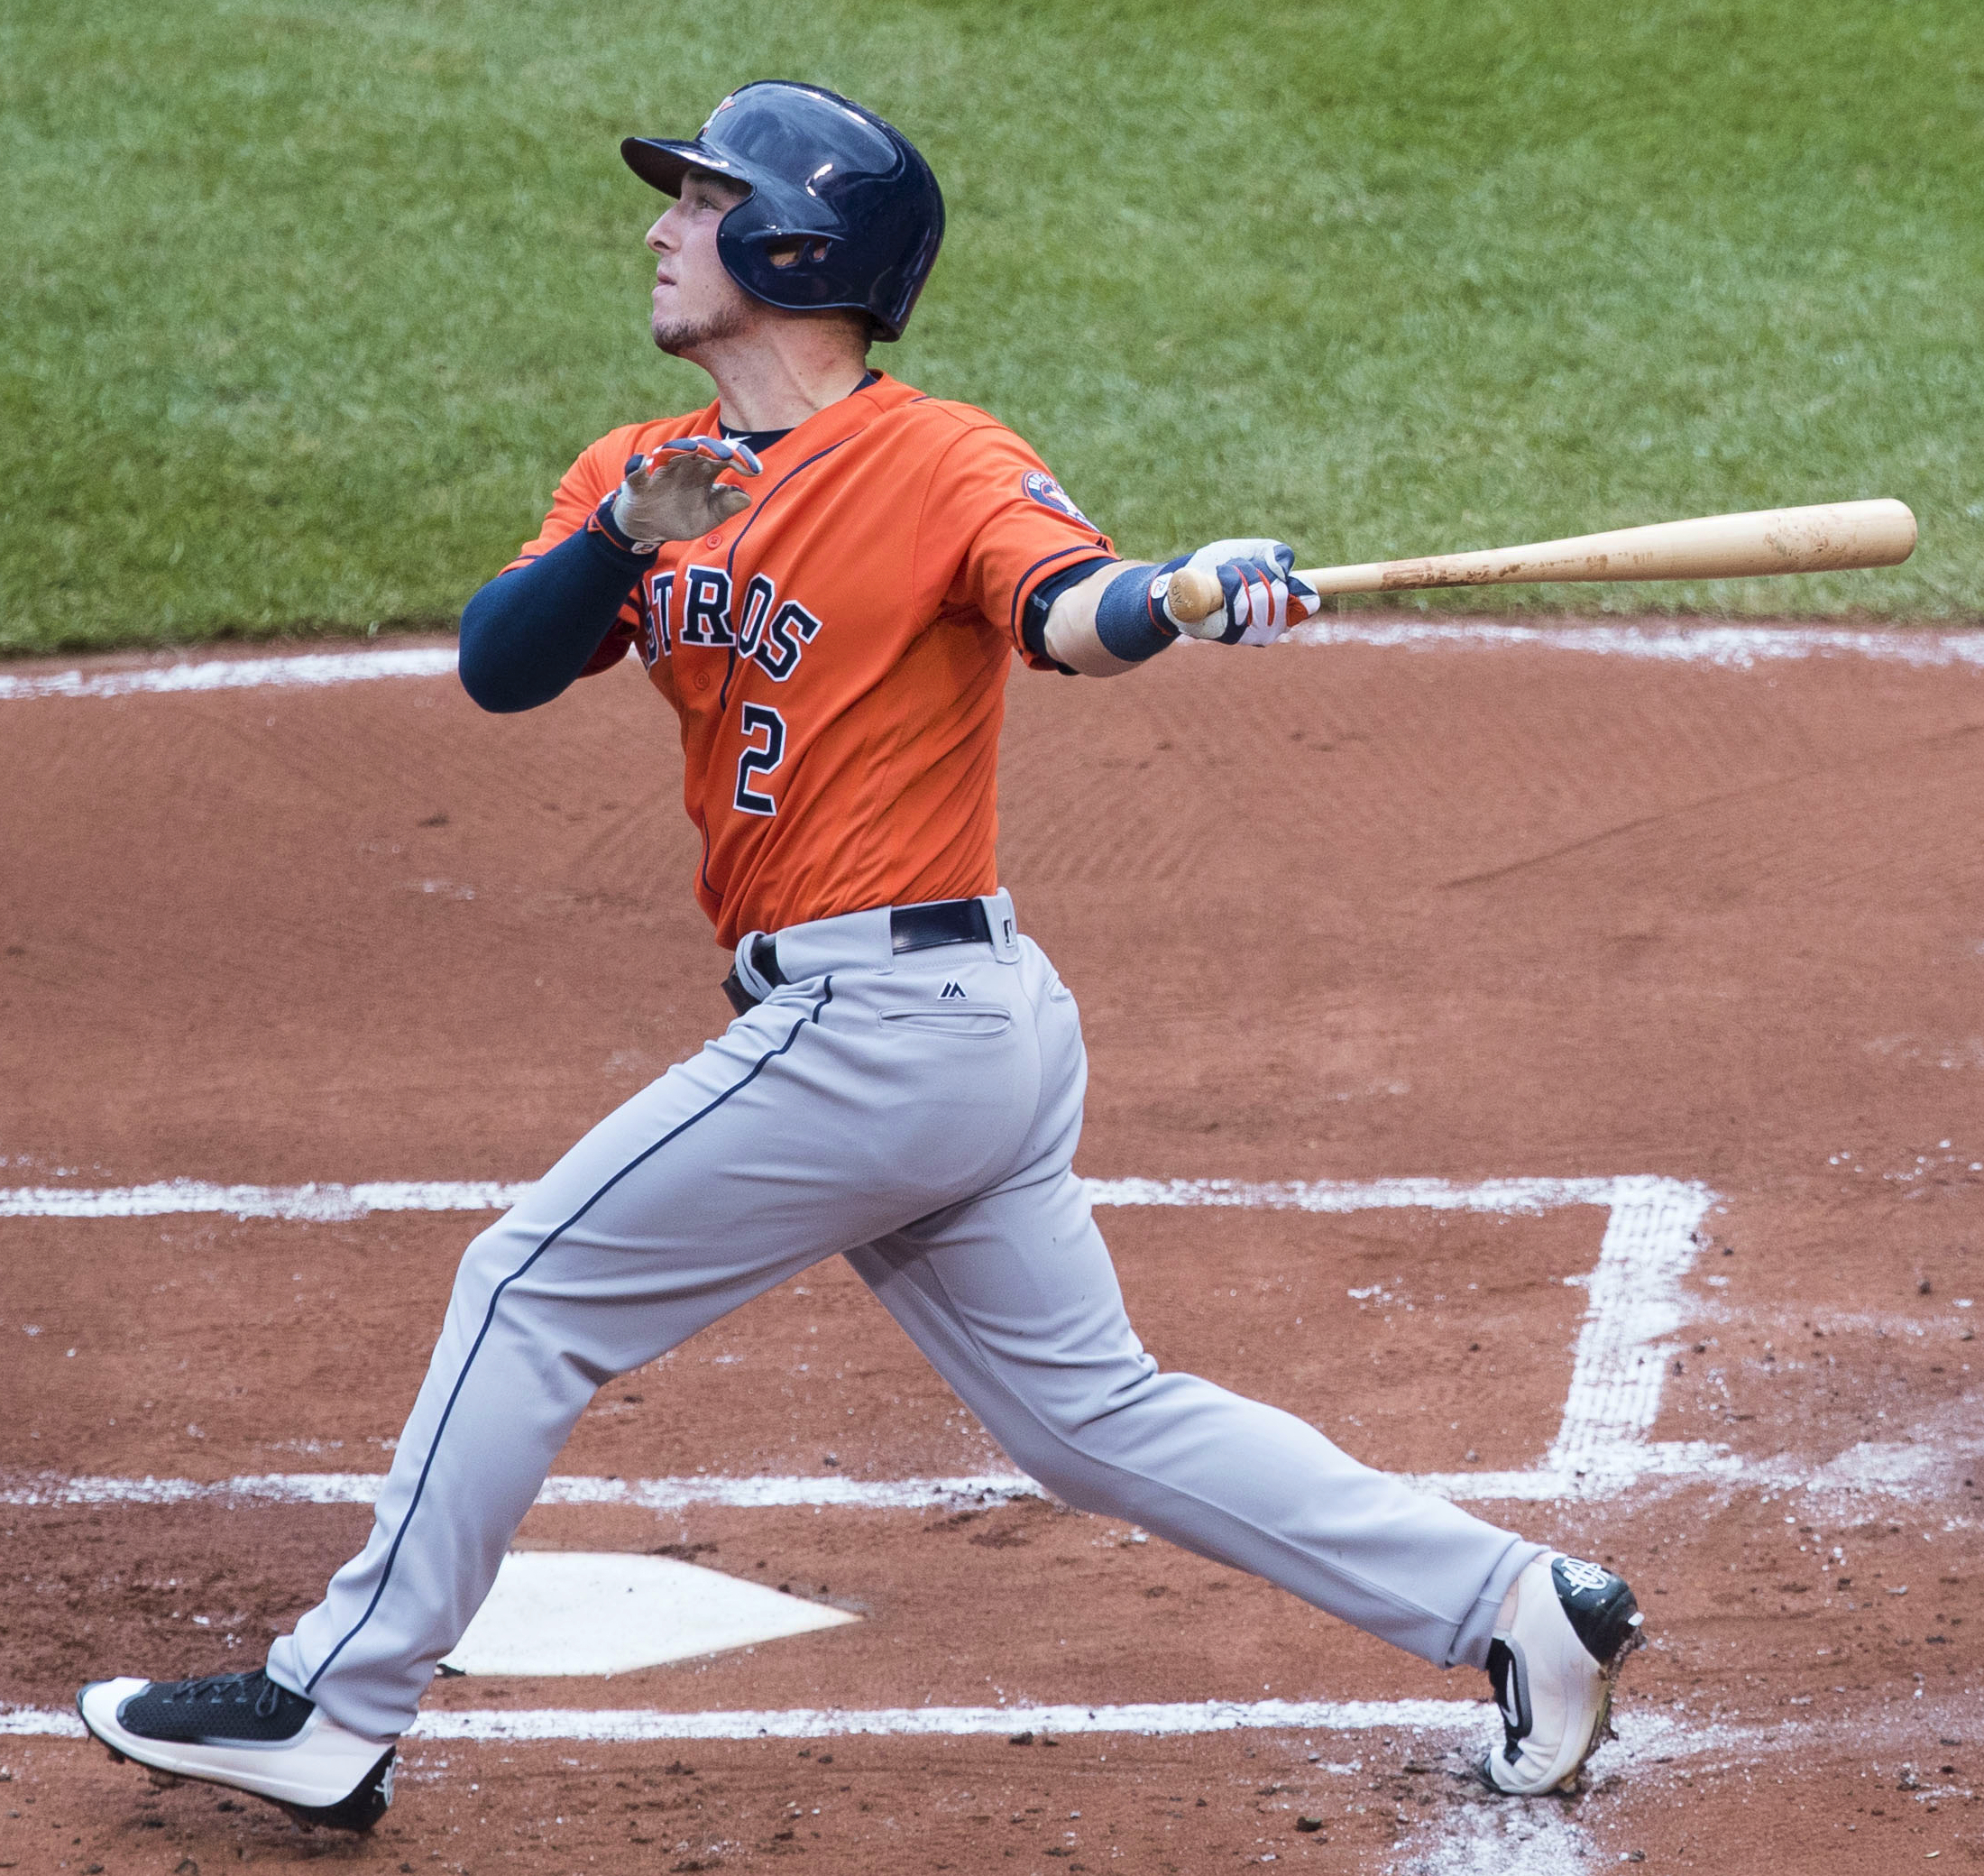 Alex Bregman will look to join the ranks of the best players in baseball